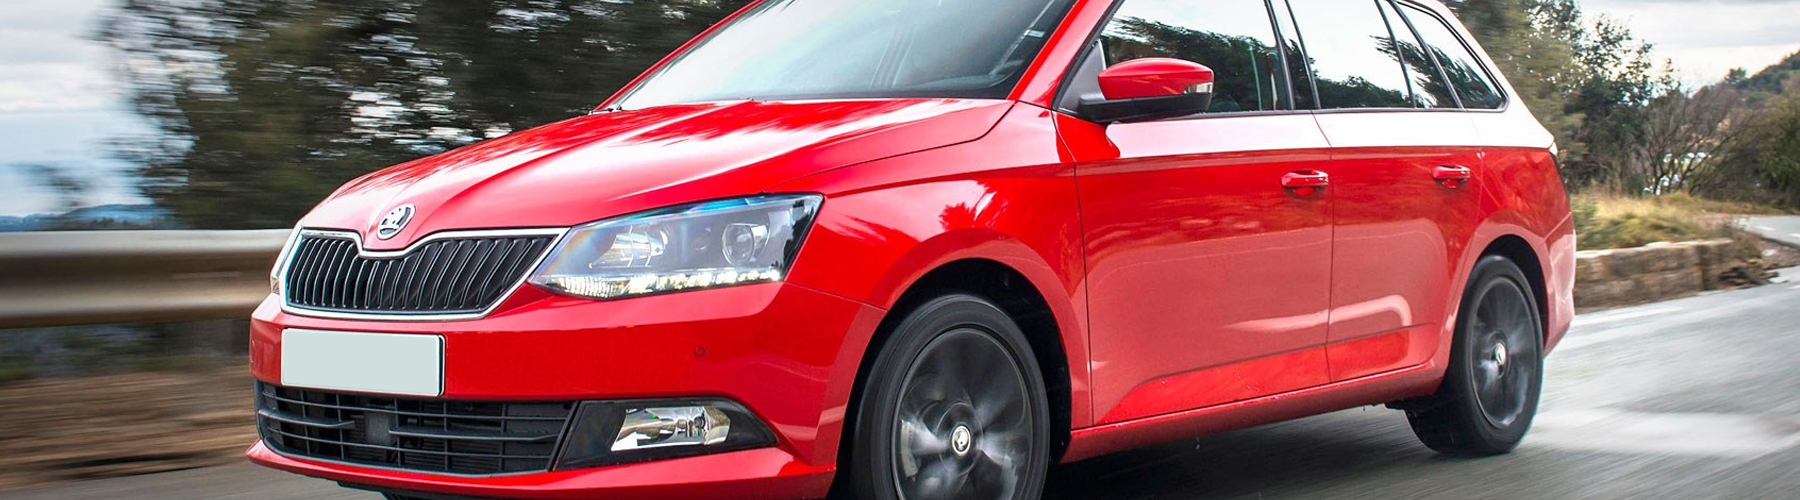 The very best value SKODA Fabia Estate deals anywhere - SKODASTORE.com